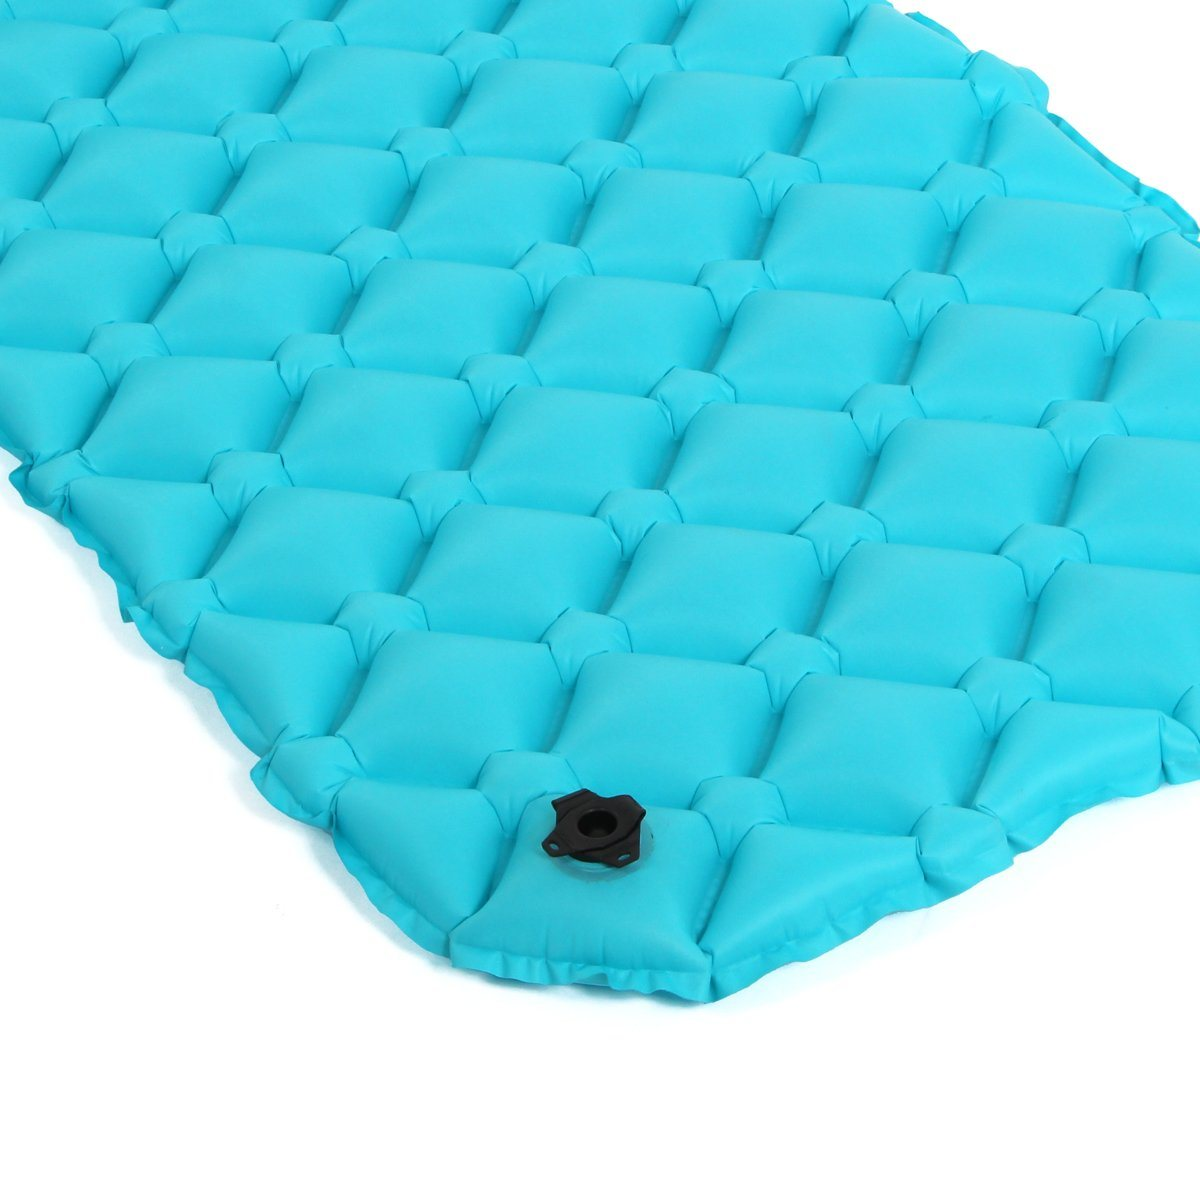 Airlite Sleeping Pad for Camping, Backpacking, Hiking. Fast Inflatable Air Tube Design with Built in Pump